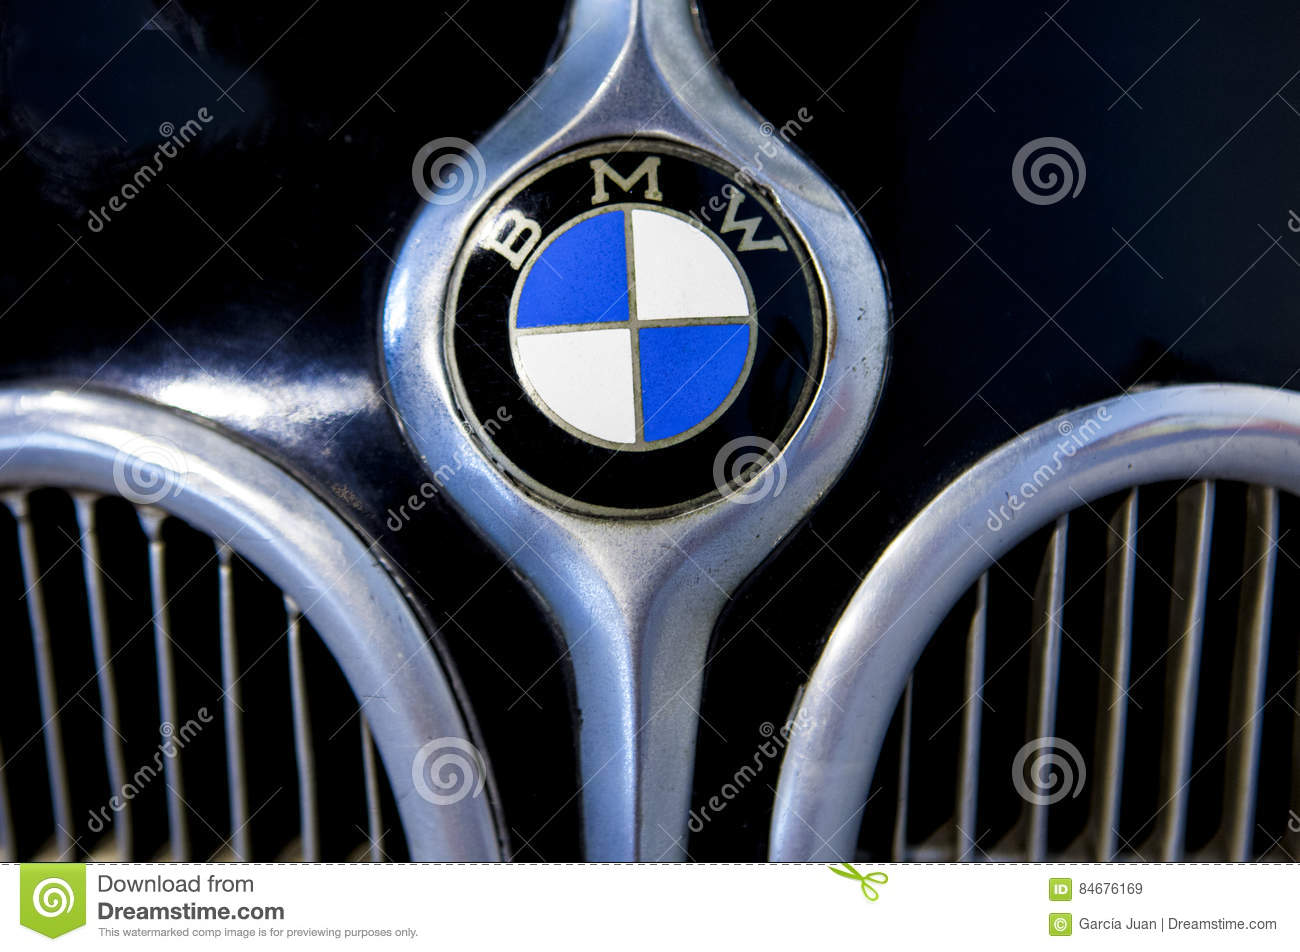 Museo Bmw.Bmw Logo Brand Outside Car Editorial Stock Image Image Of Closeup